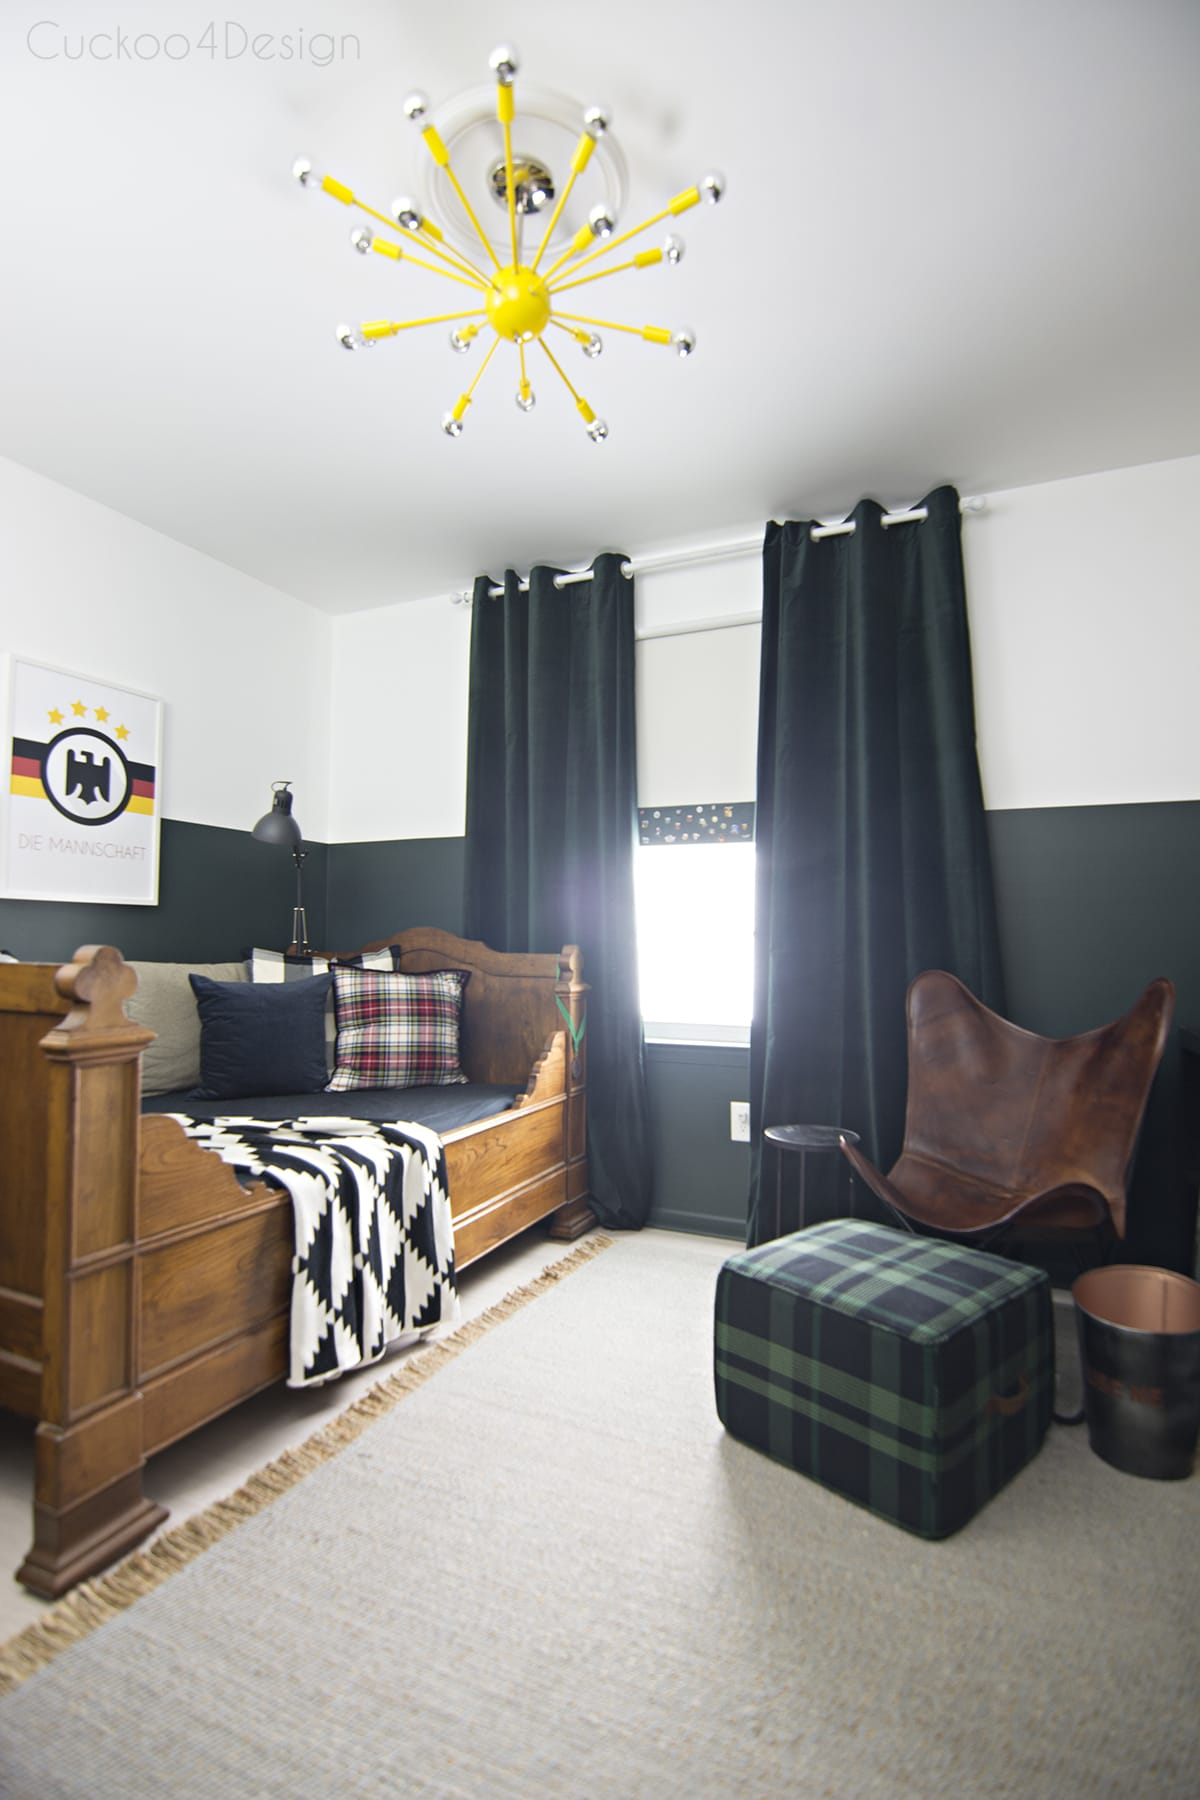 Butterscotch Leather Butterfly Chair In Sophisticated Boys Bedroom With  Dark Green Walls, Mixed Plaids And